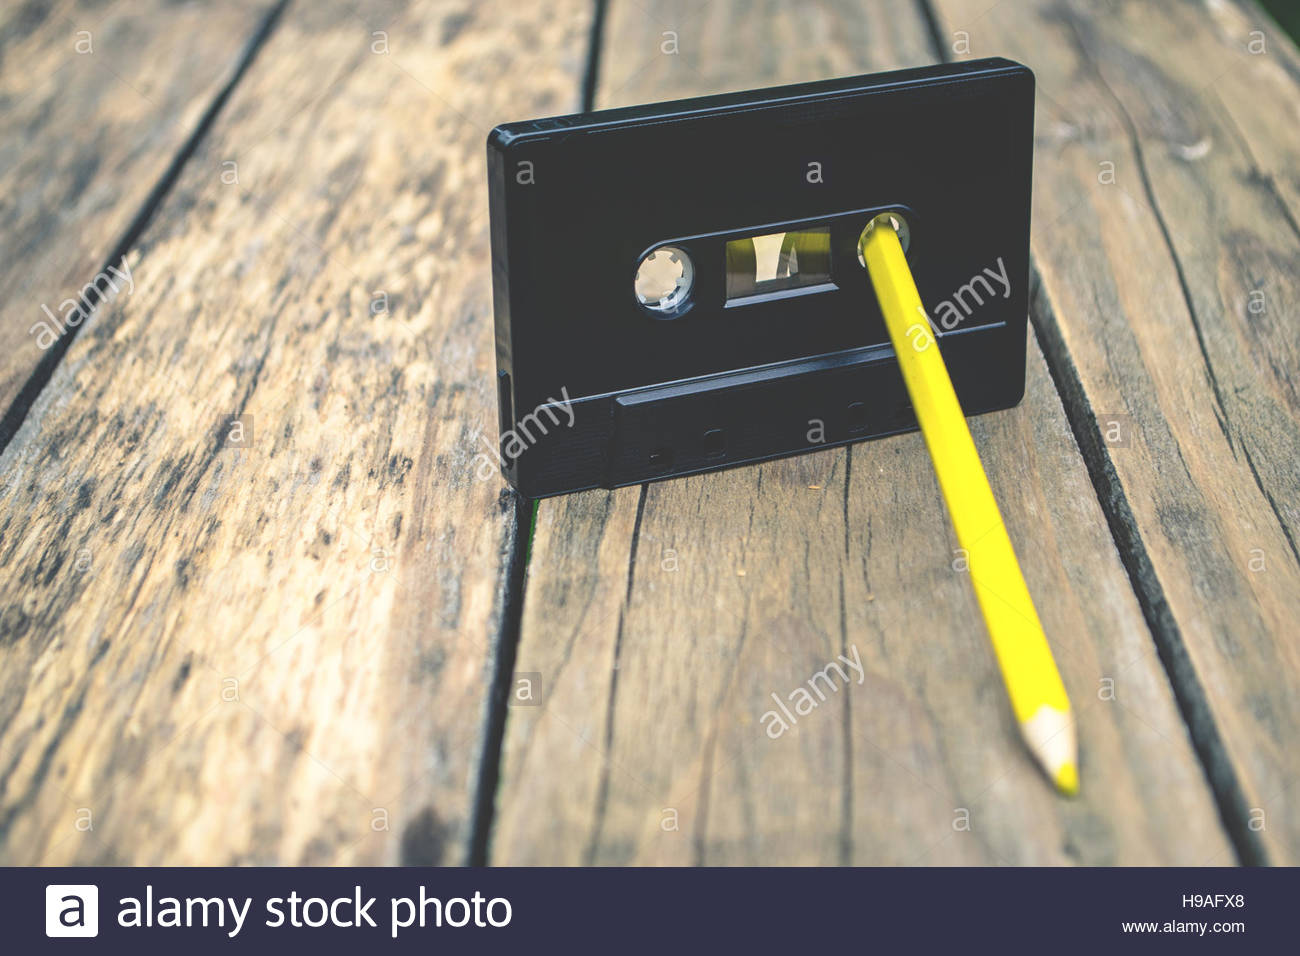 Old audiotape and pencil - Stock Image